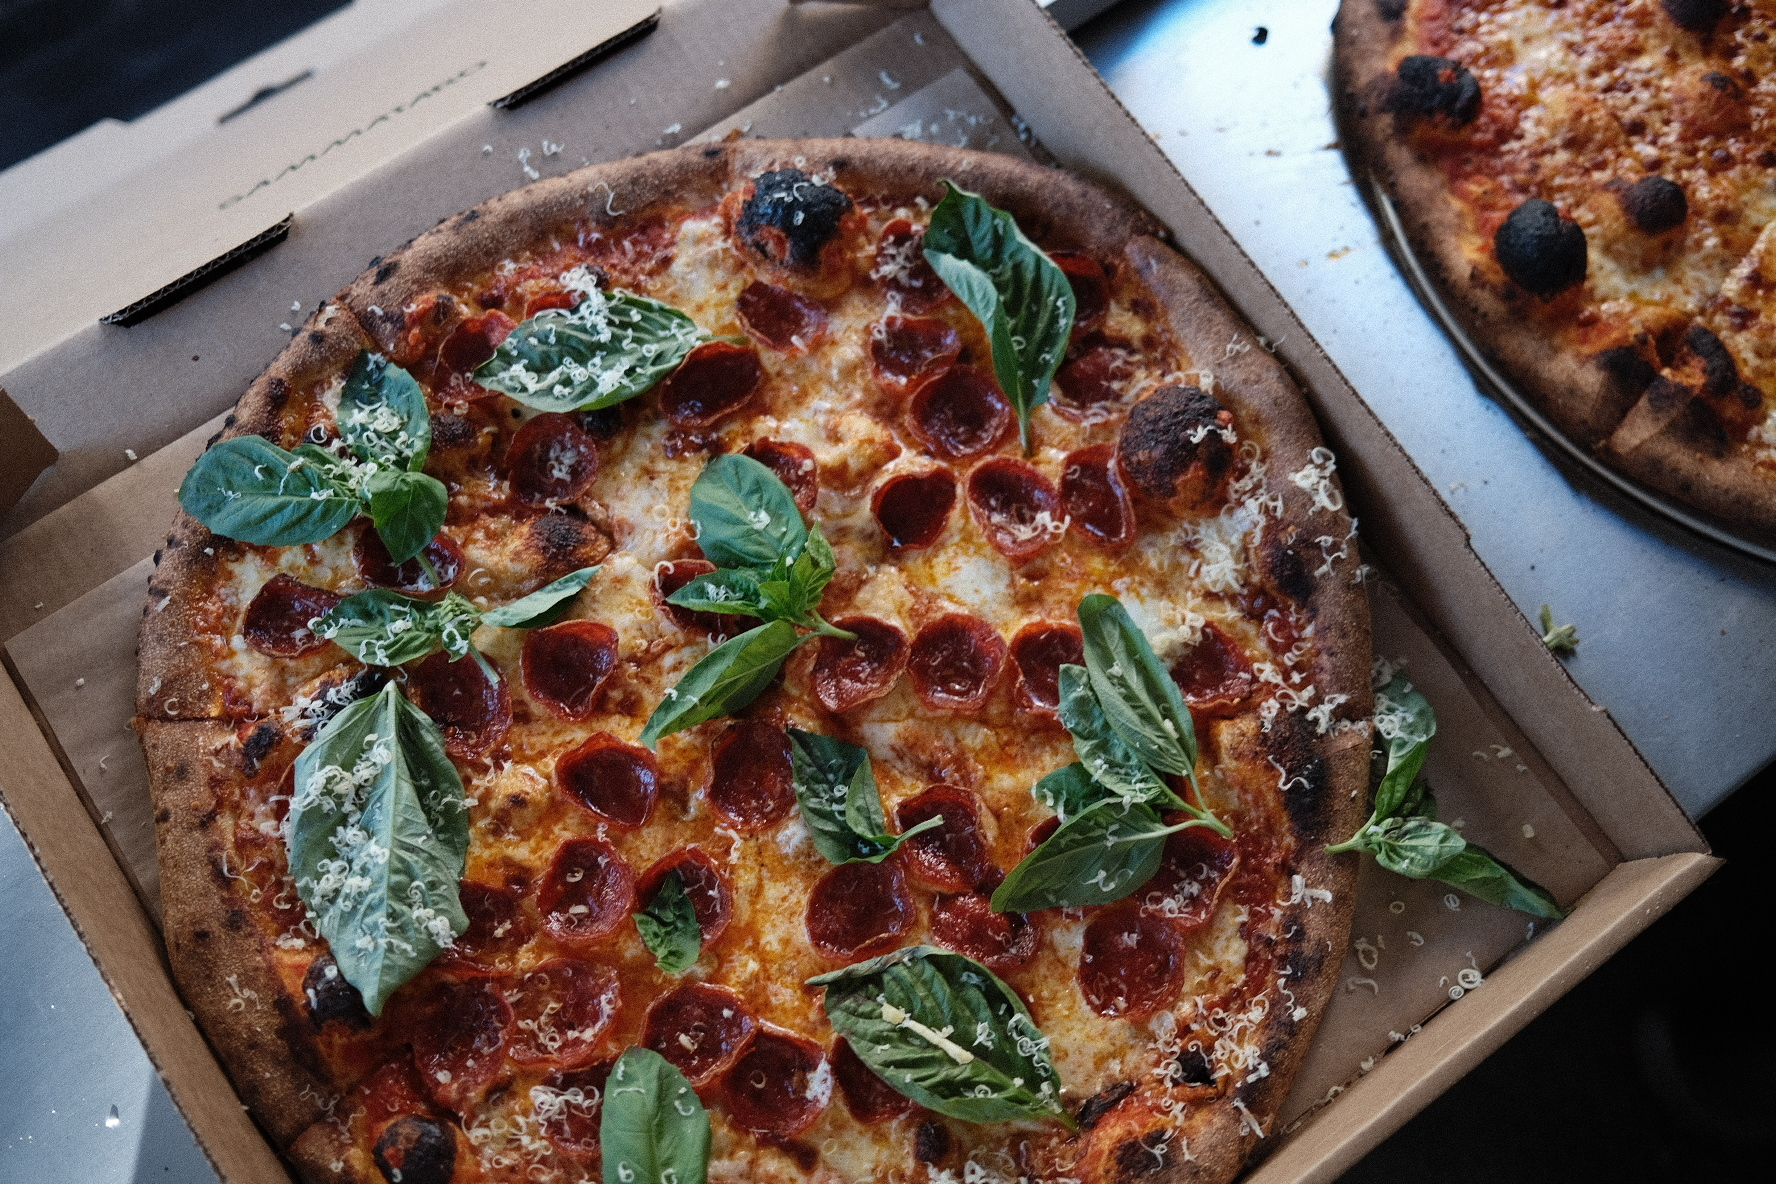 Pepperoni pizza with lots of basil in a cardboard pizza box